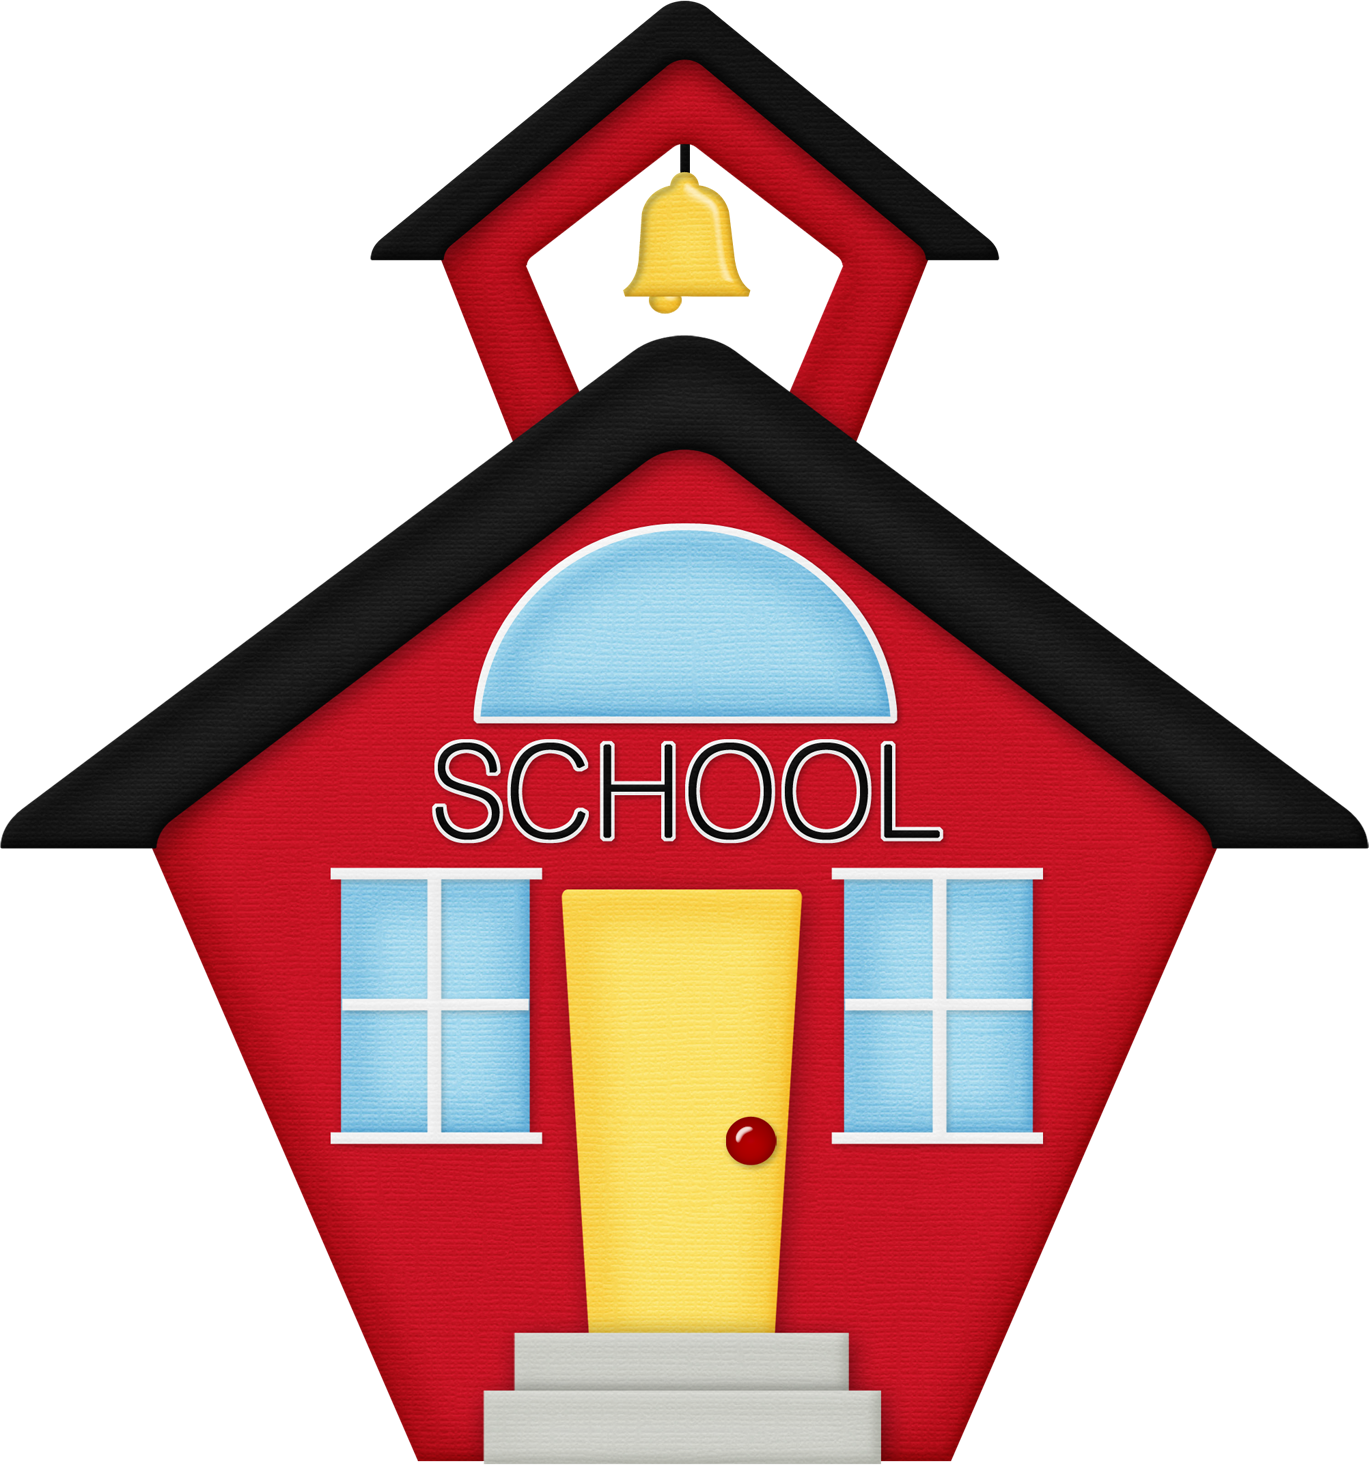 Clipart of school houses vector transparent download School House Images | Clipart Panda - Free Clipart Images vector transparent download